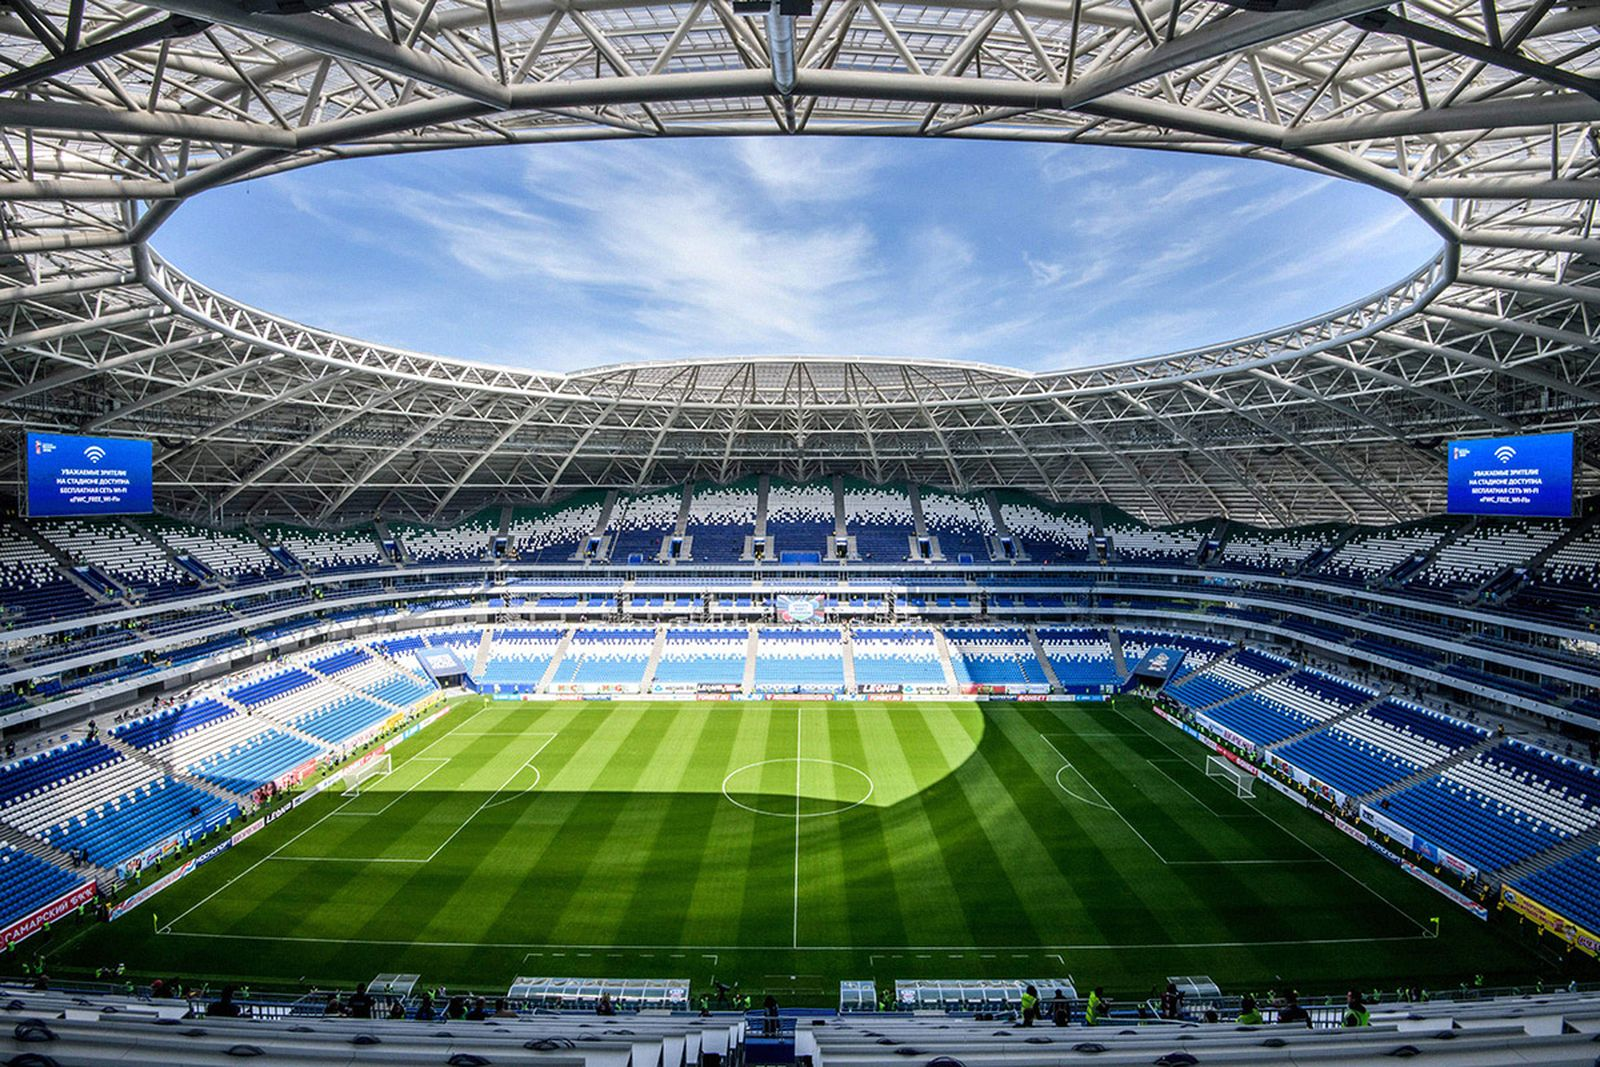 fifa world cup stadiums overview 2018 FIFA World Cup Russia 2018